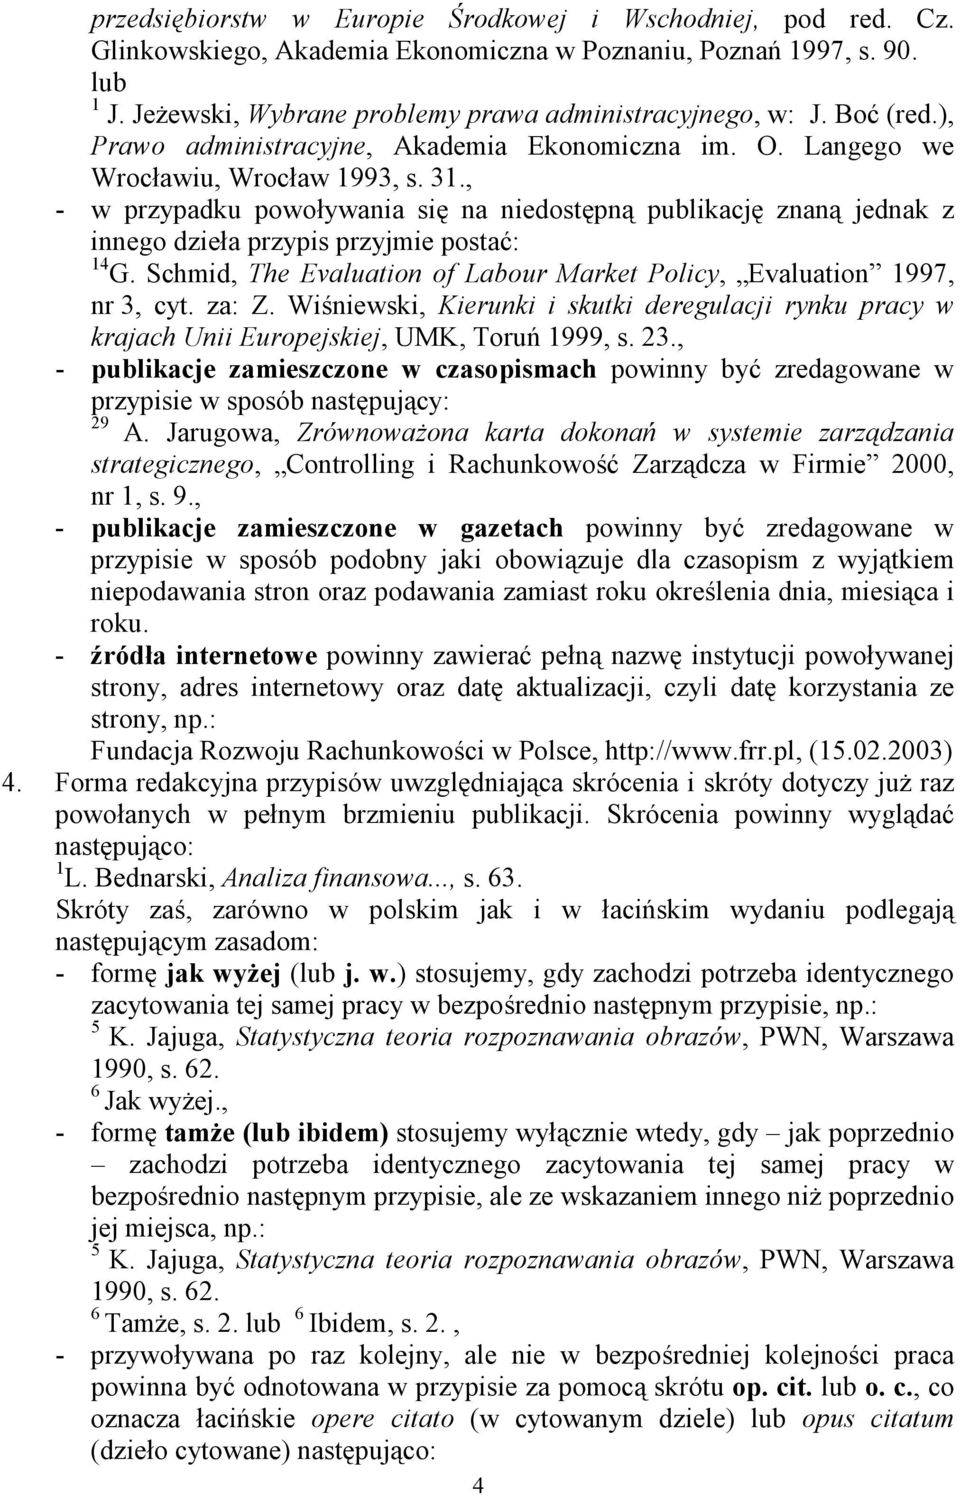 , - w przypadku powoływania się na niedostępną publikację znaną jednak z innego dzieła przypis przyjmie postać: 14 G. Schmid, The Evaluation of Labour Market Policy, Evaluation 1997, nr 3, cyt. za: Z.